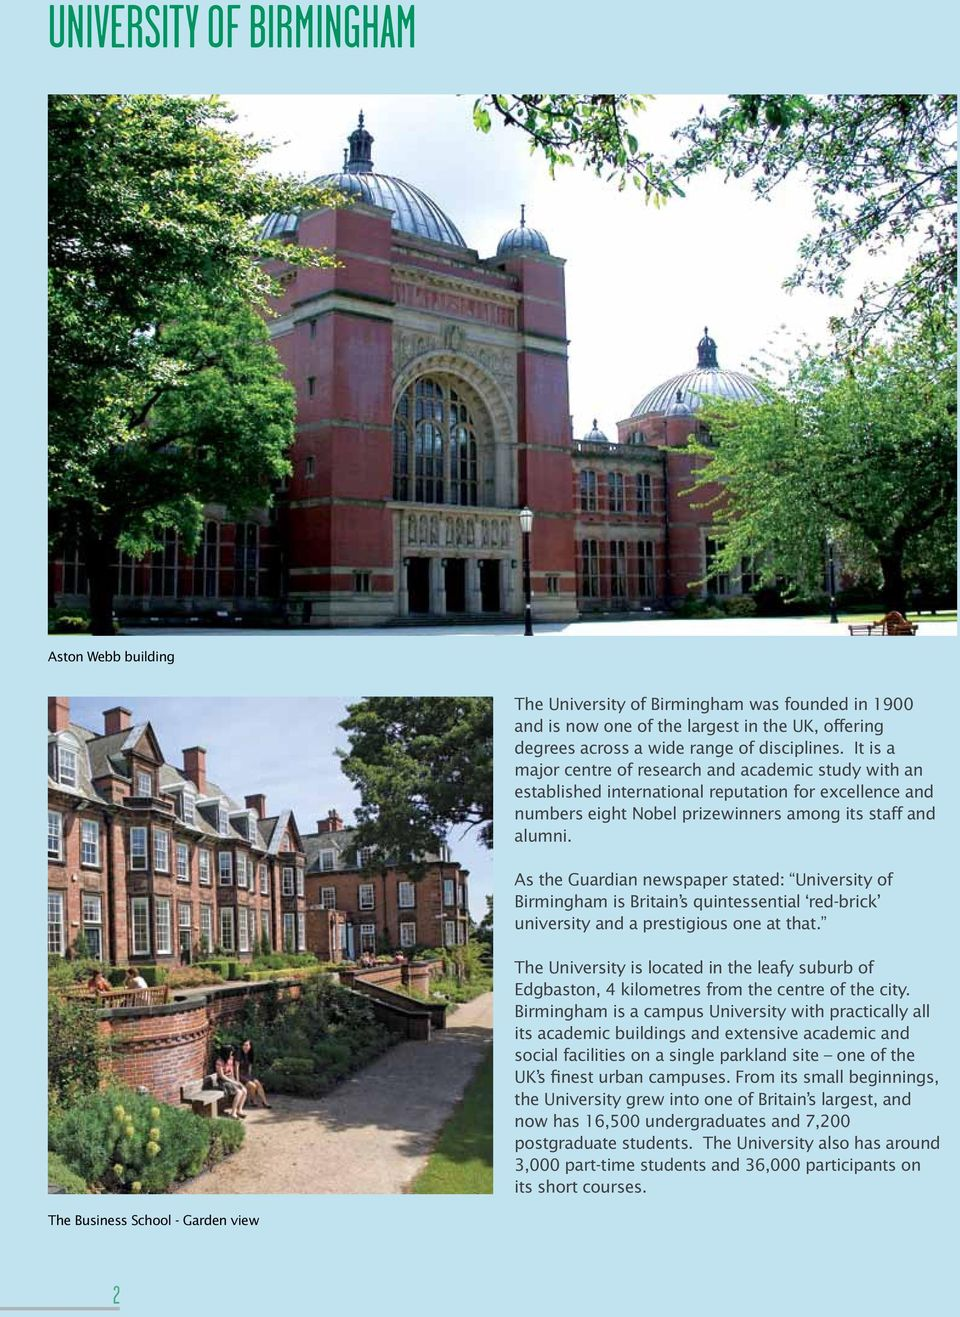 As the Guardian newspaper stated: University of Birmingham is Britain s quintessential red-brick university and a prestigious one at that.